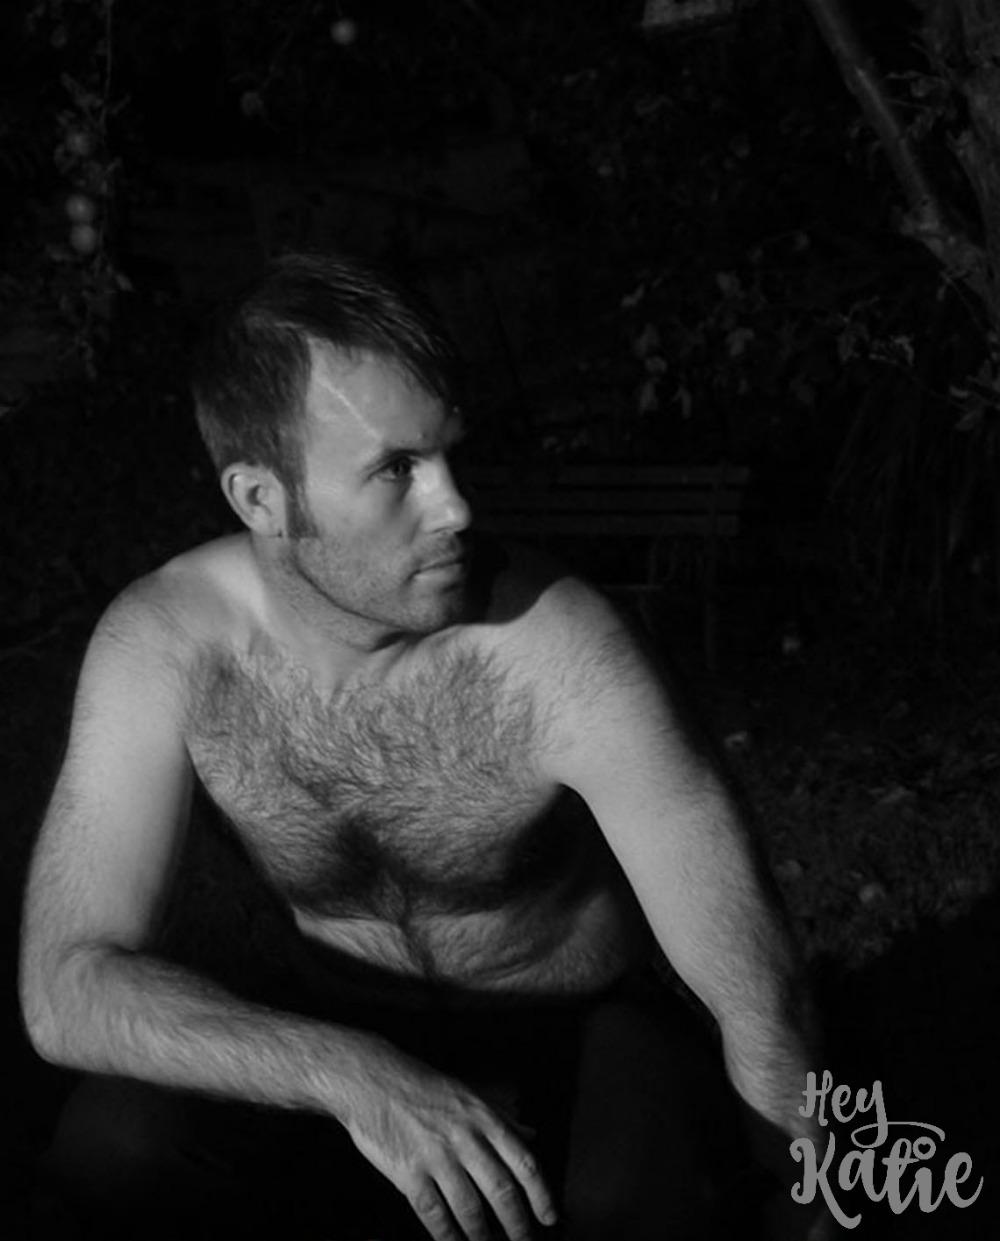 Night Time Photoshoot in the Back Yard - 2011